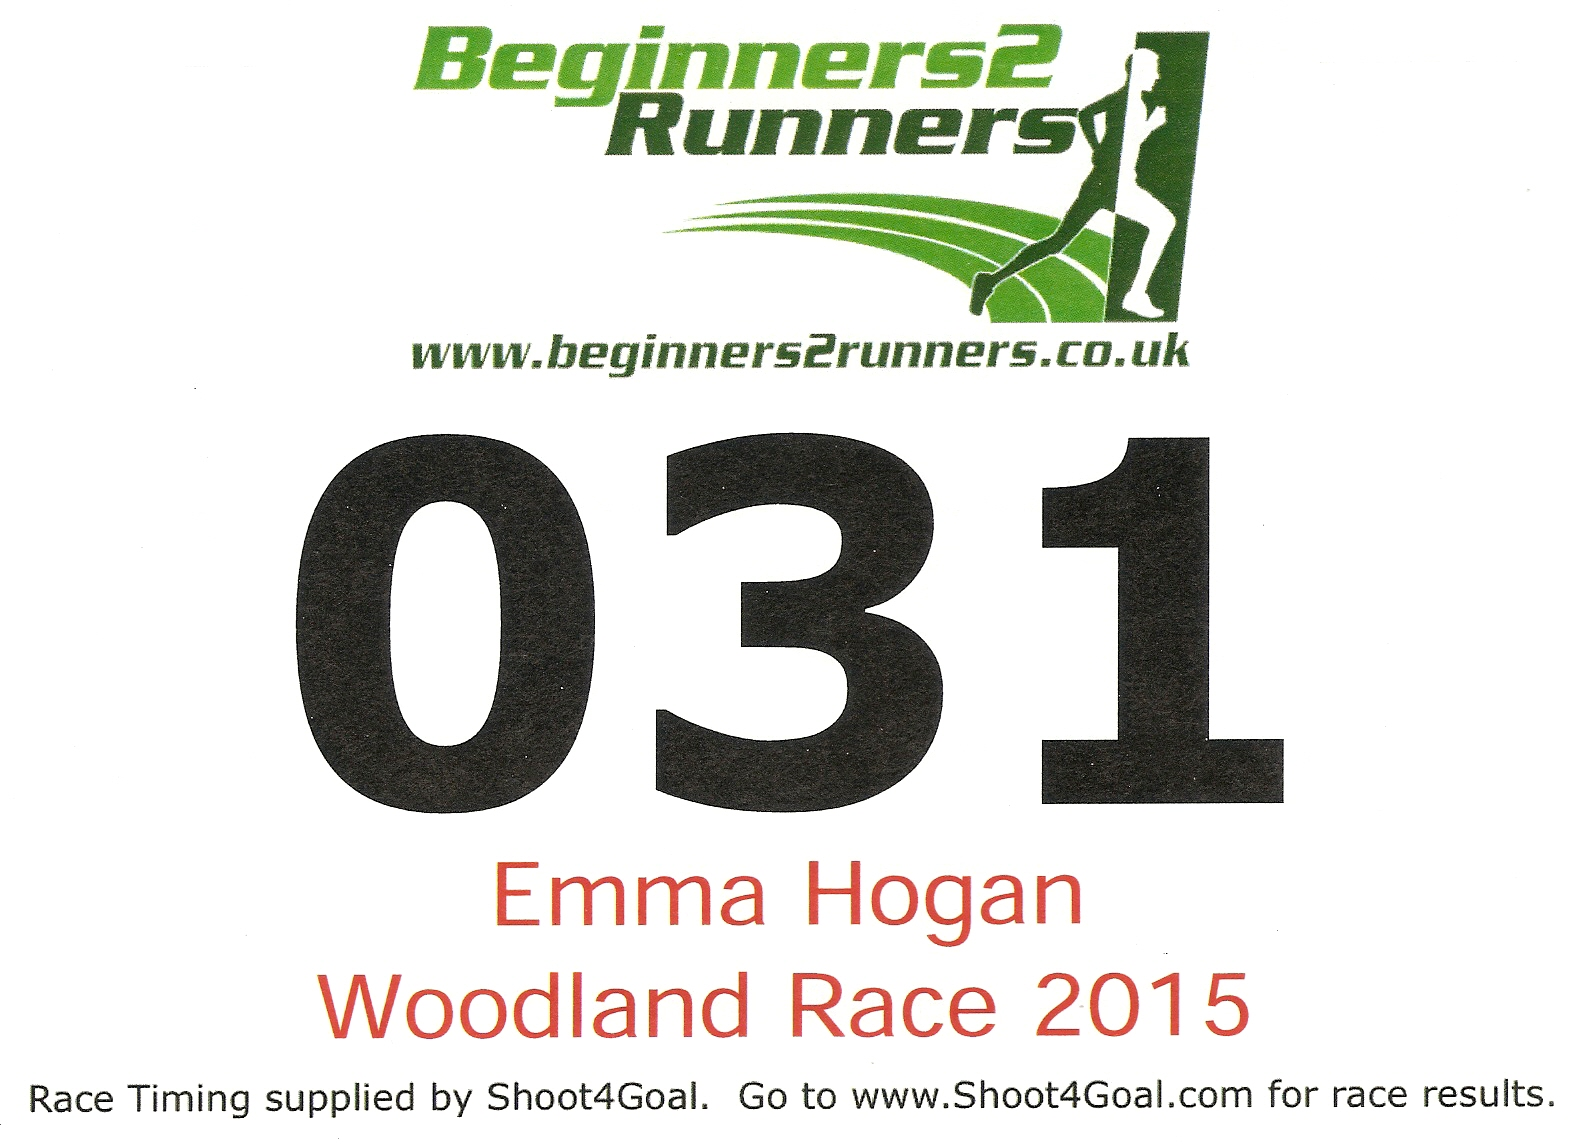 Digital Race Bib